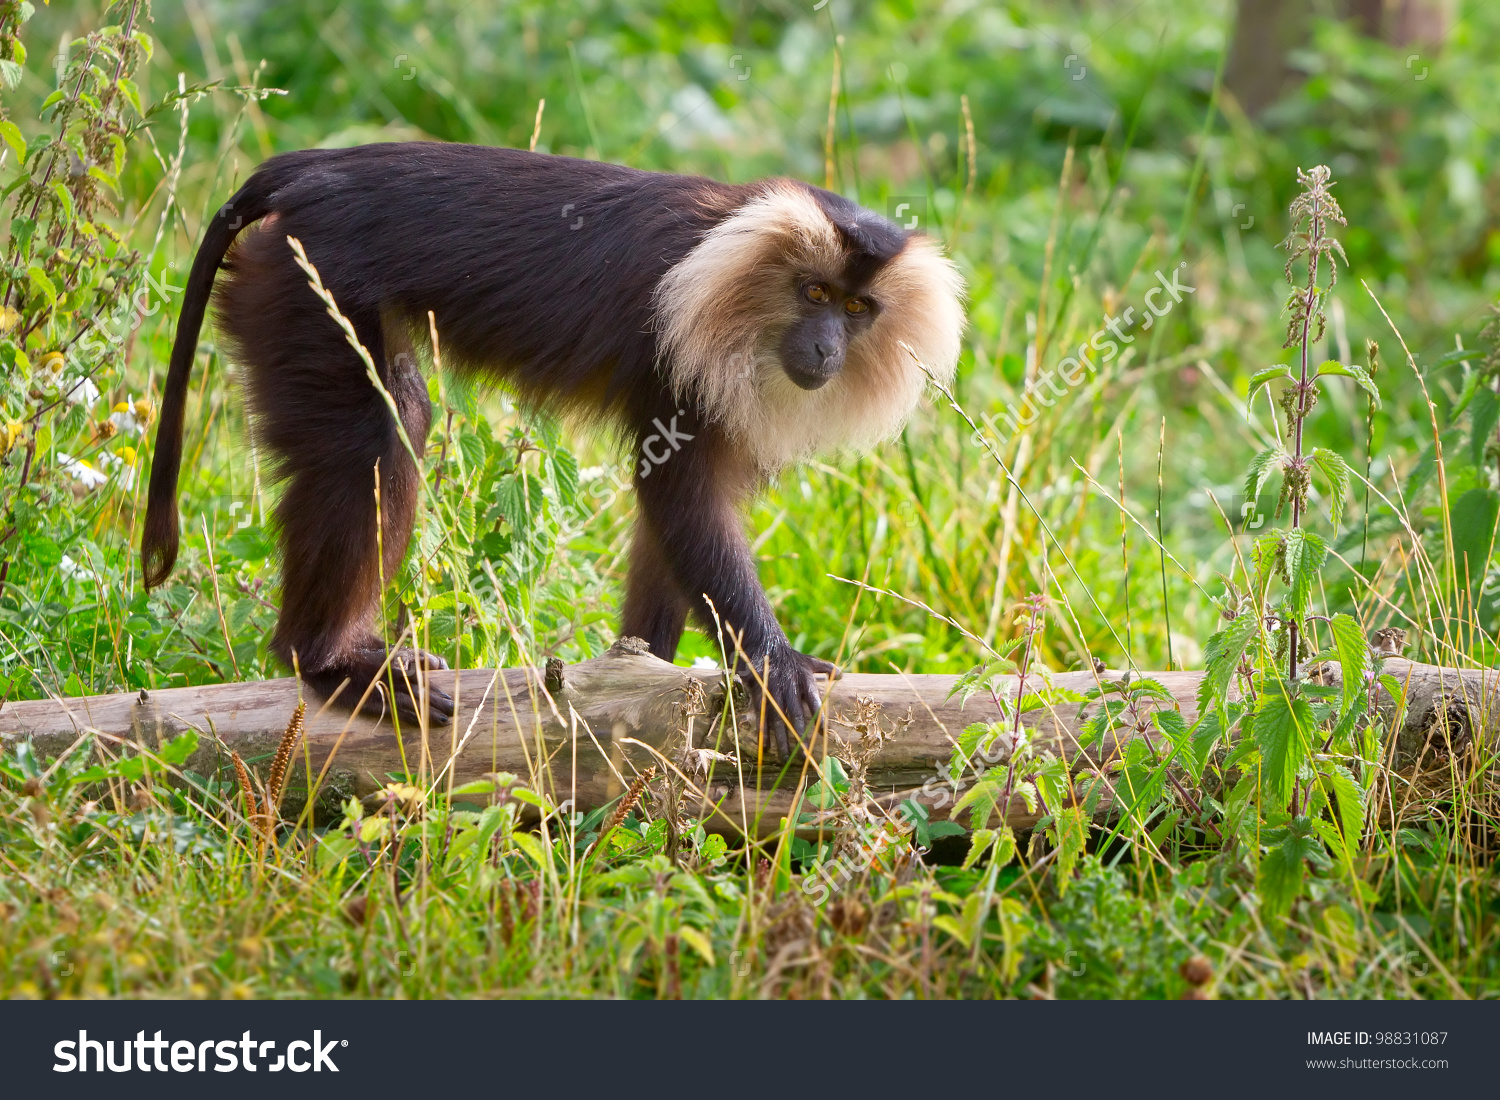 Lion Tailed Macaque Monkey Wildlife Park Stock Photo 98831087.